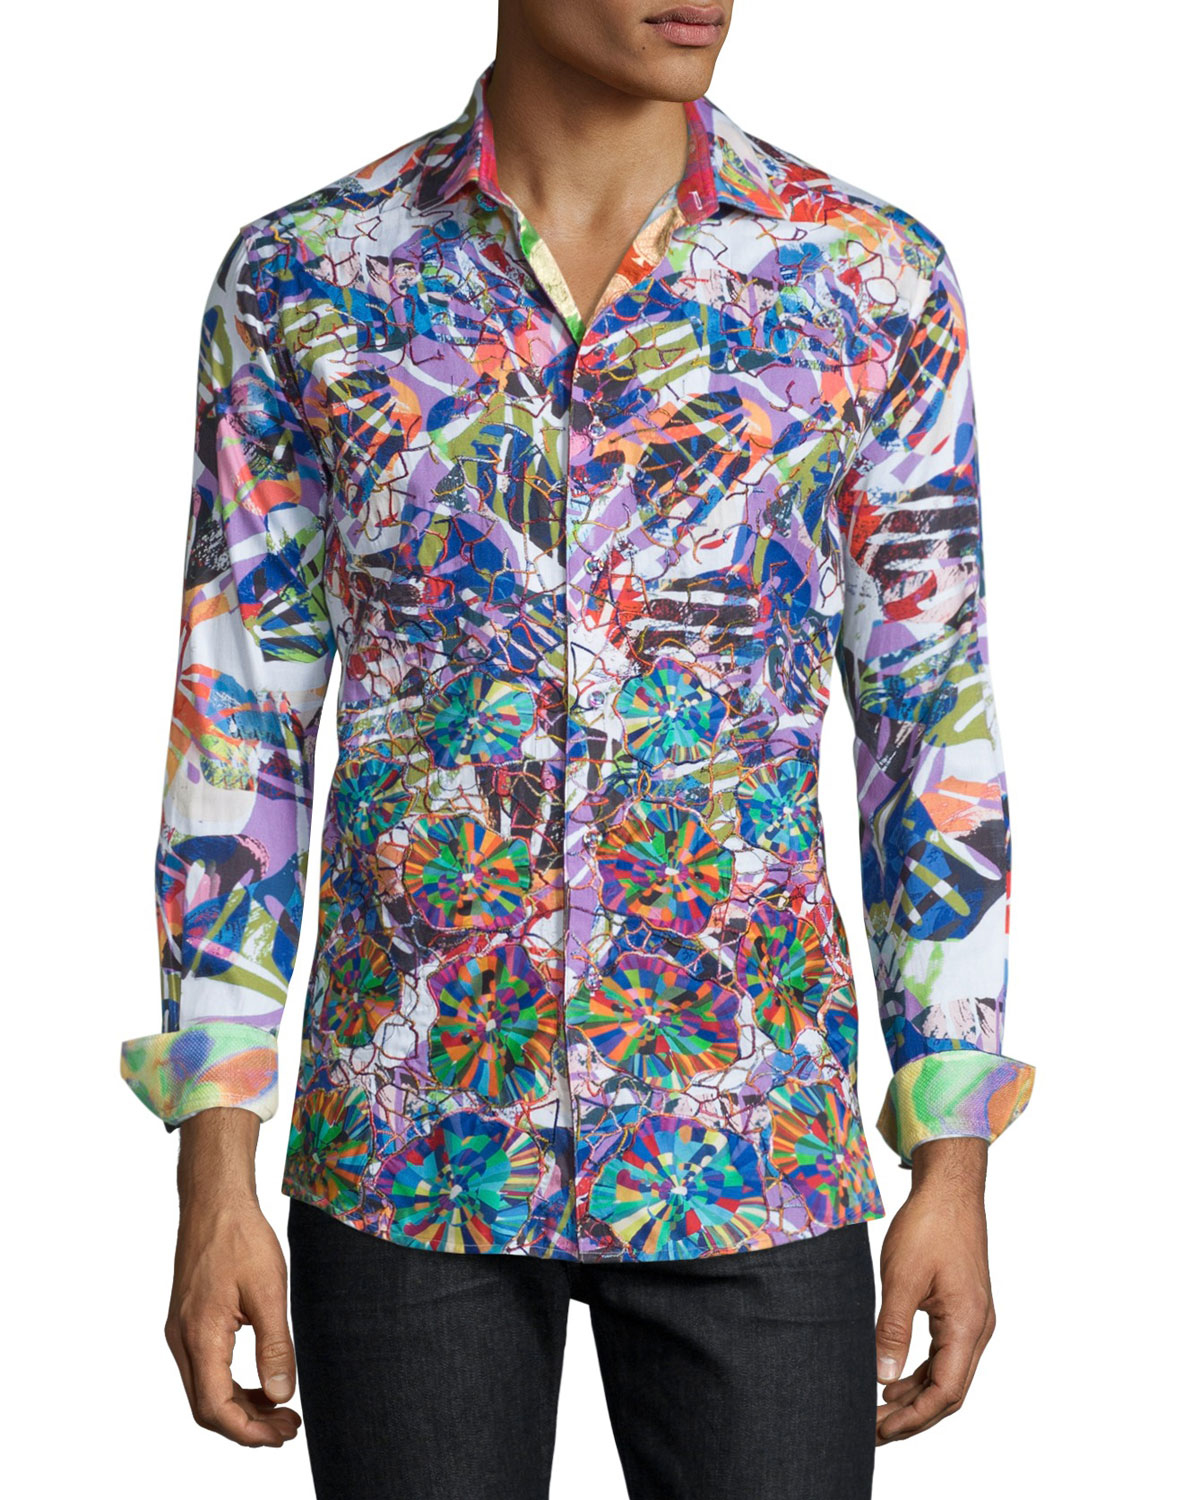 Robert graham limited edition allover printed sport shirt for Robert graham sport shirt